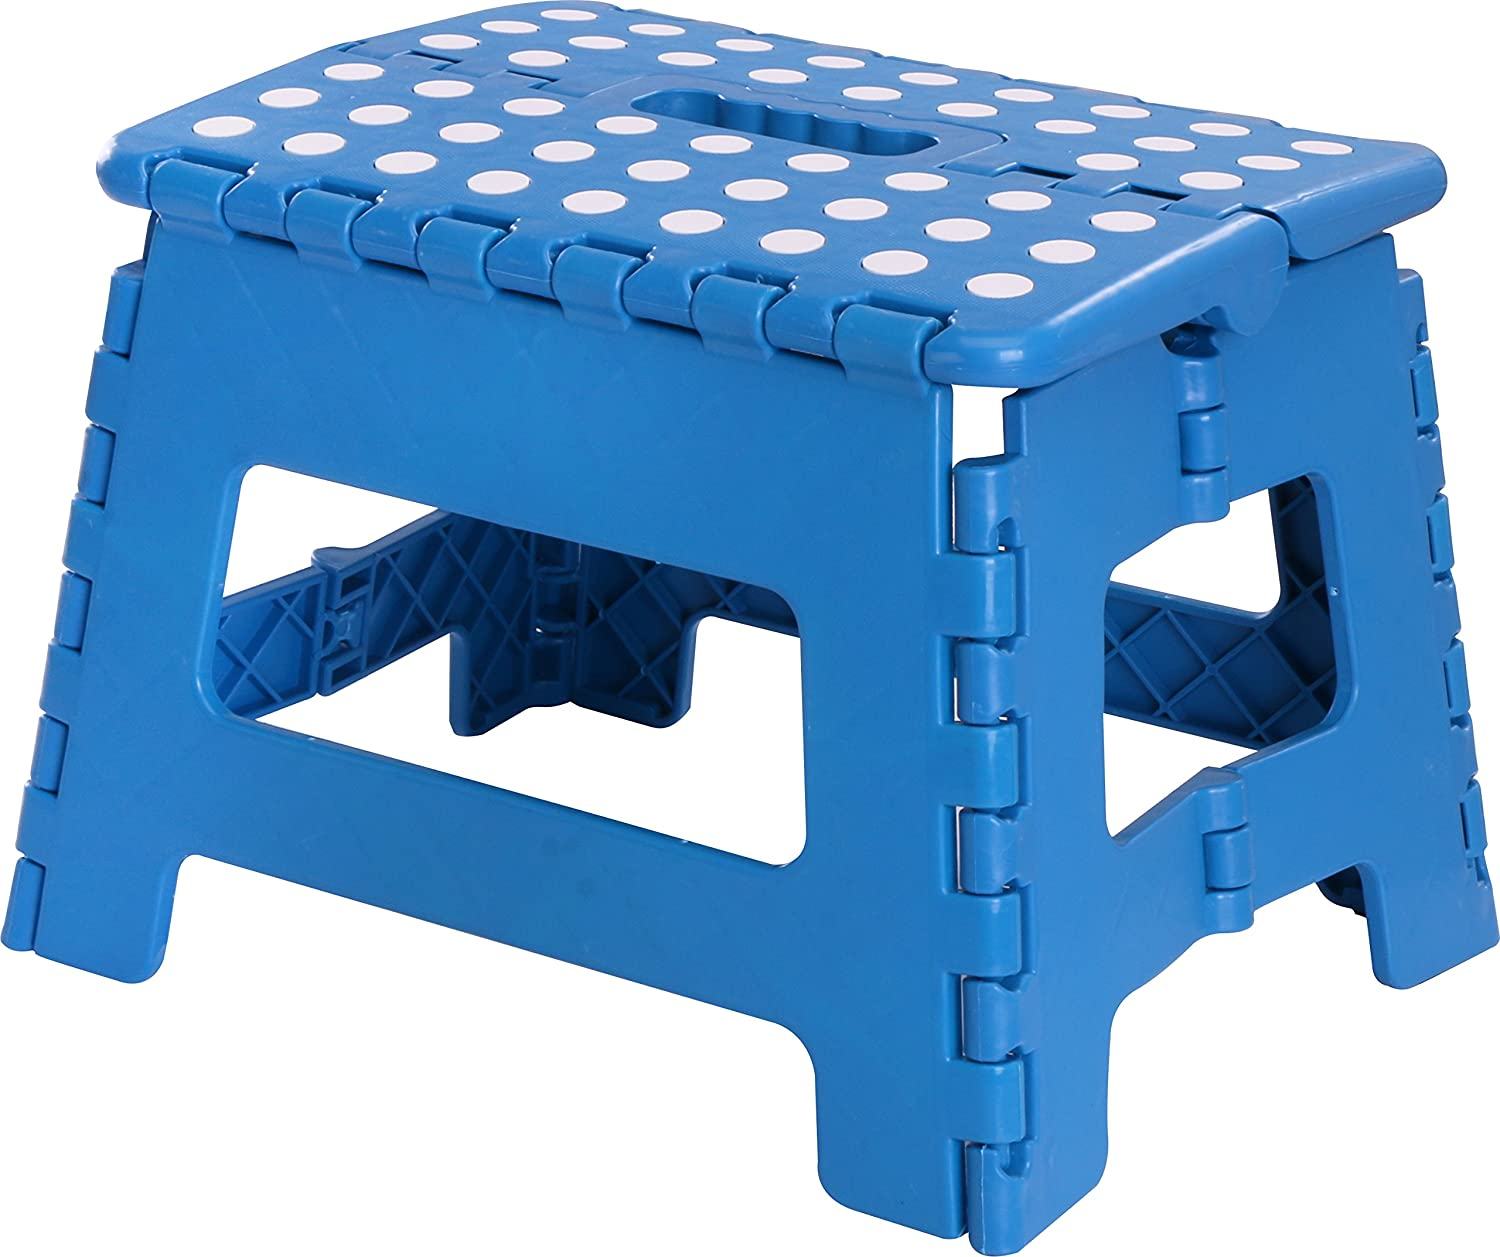 Utopia Home Foldable Step Stool for Kids - 11 Inches Wide and 9 Inches Tall - Blue and White - Holds Up to 300 lbs - Lightweight Plastic Design